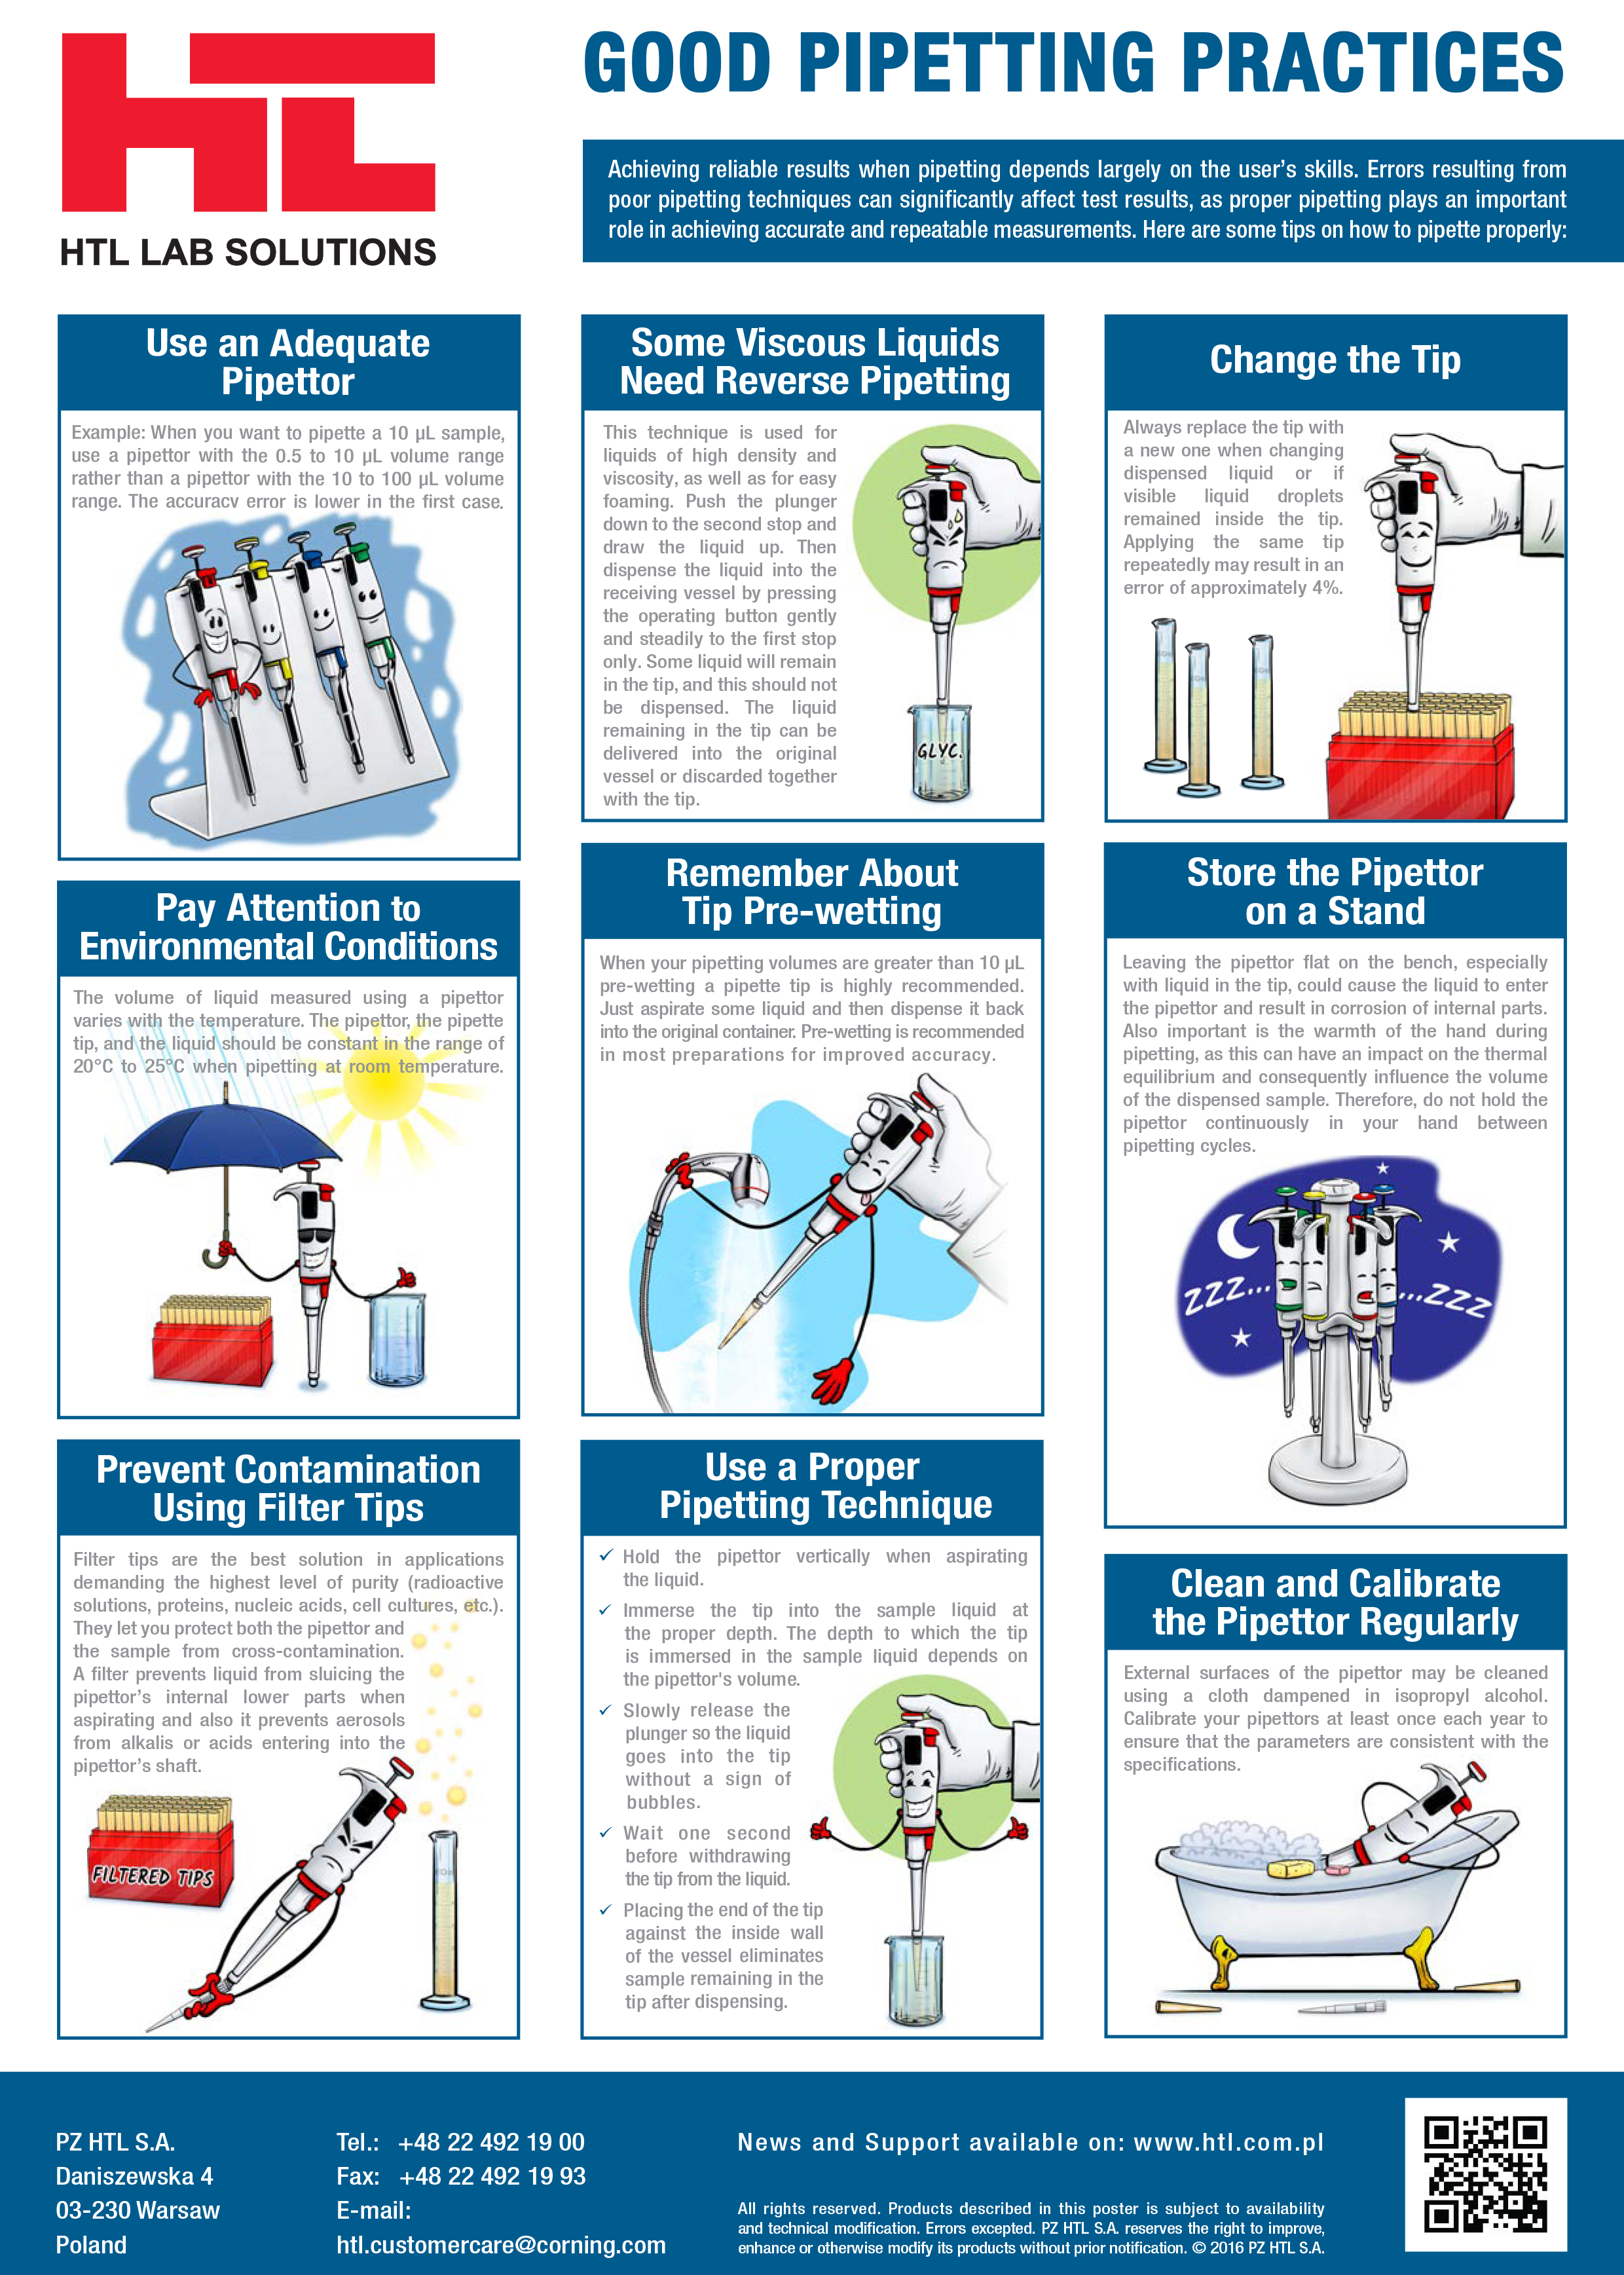 Good Pipetting Practices Poster